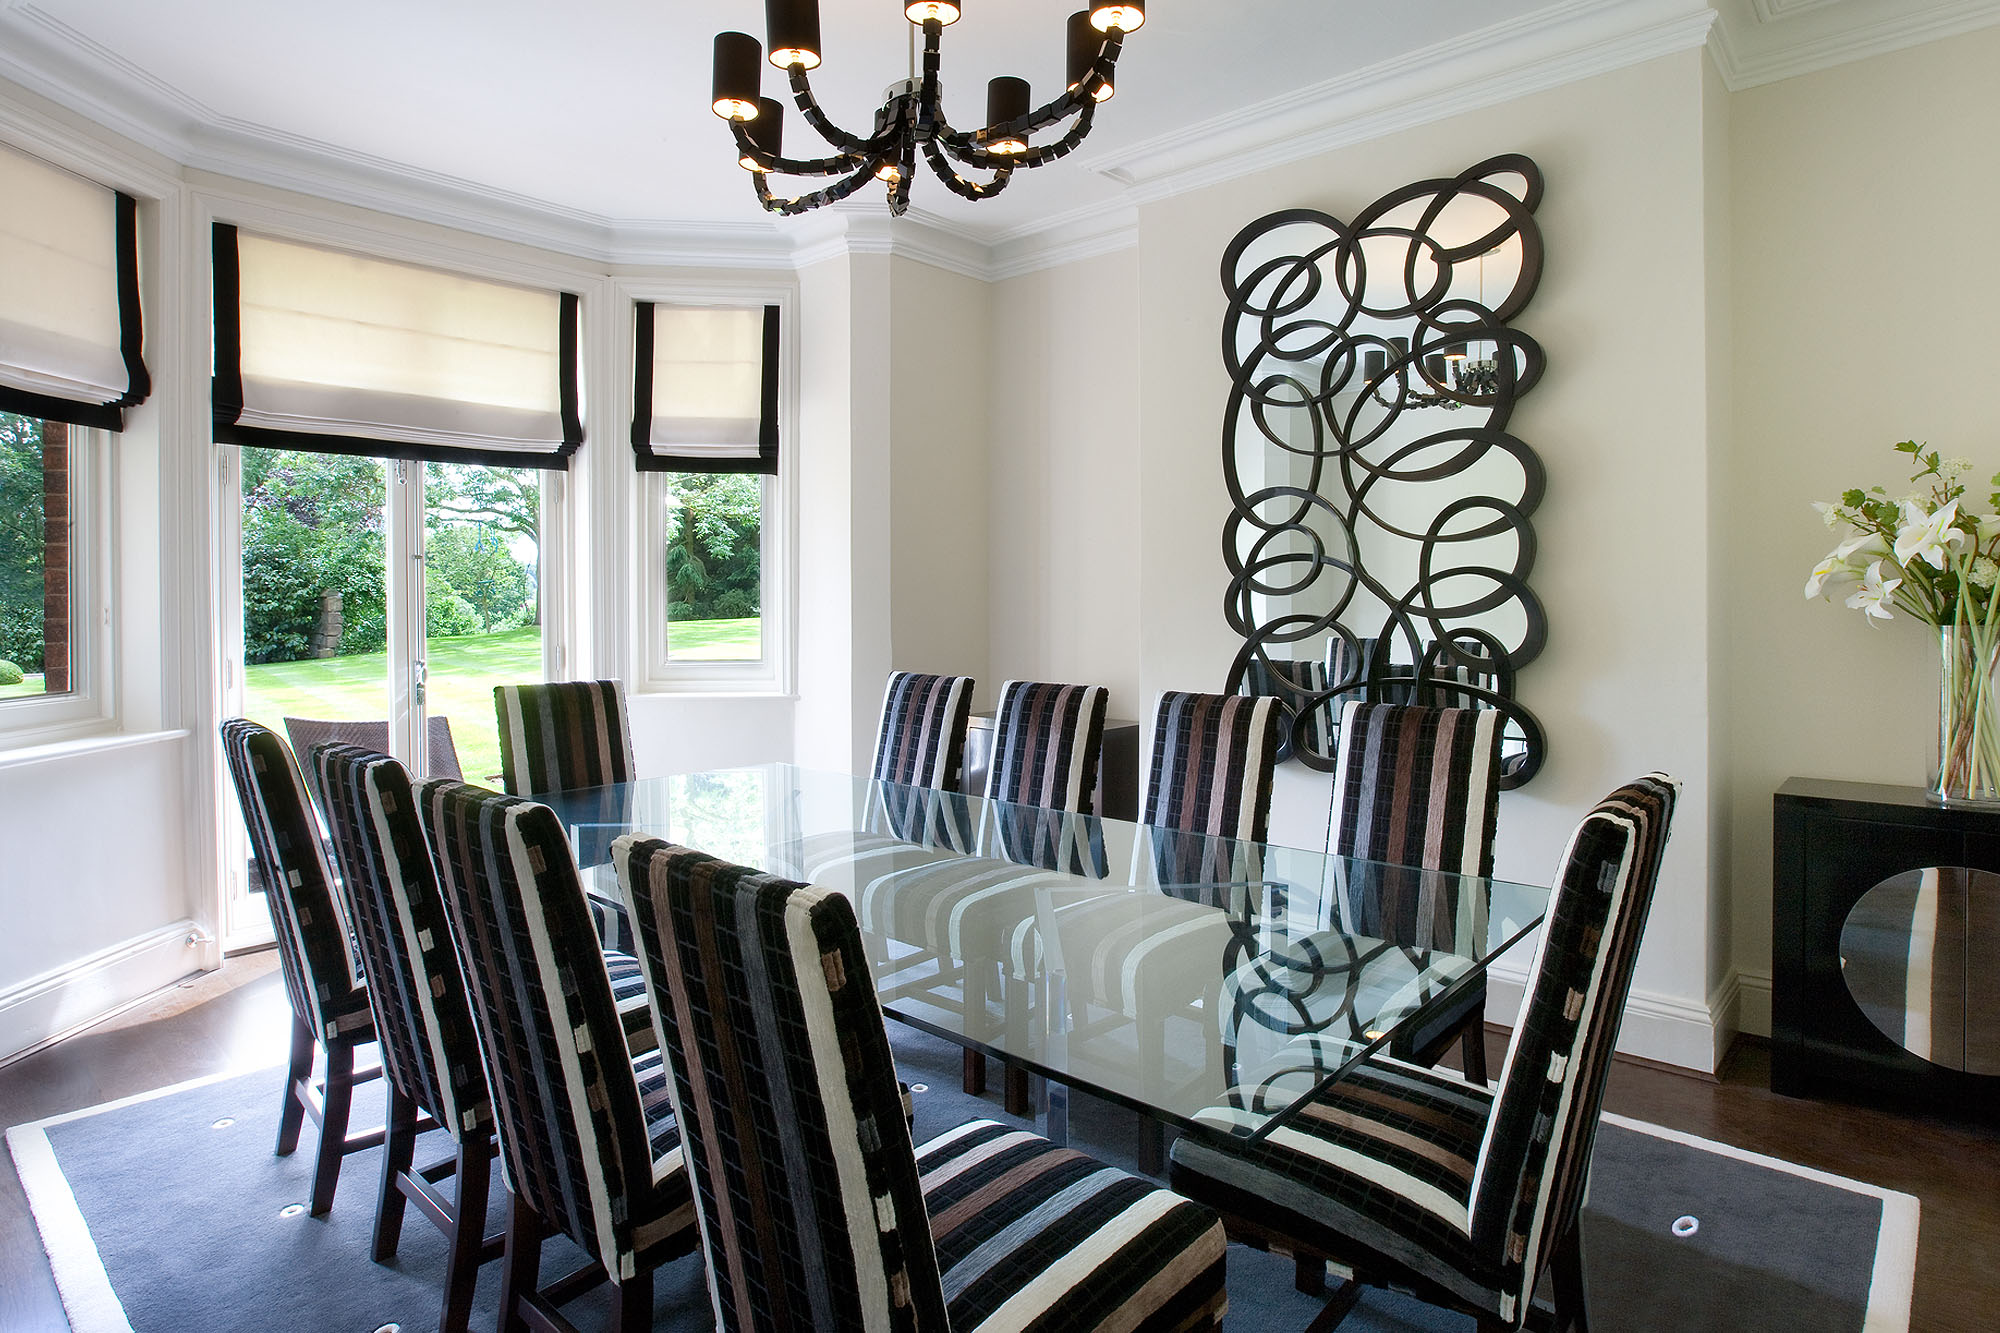 Contemporary striped dining room furniture based on a black and white theme.